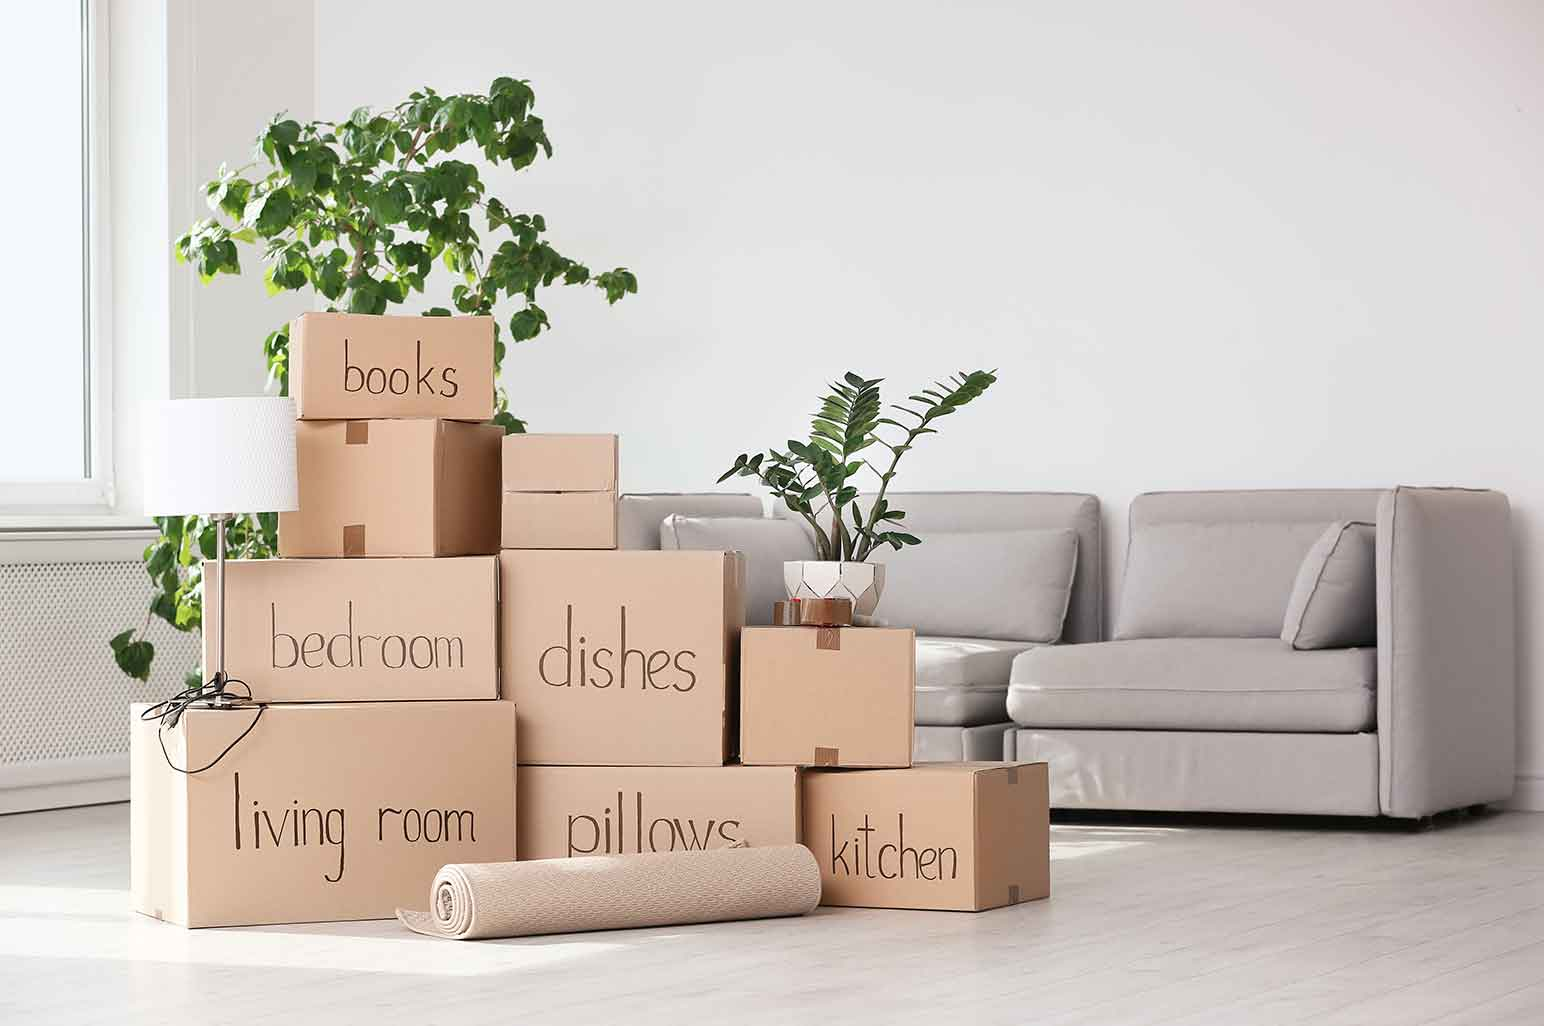 Moving Boxes - How to Maintain Your Home When You First Move In